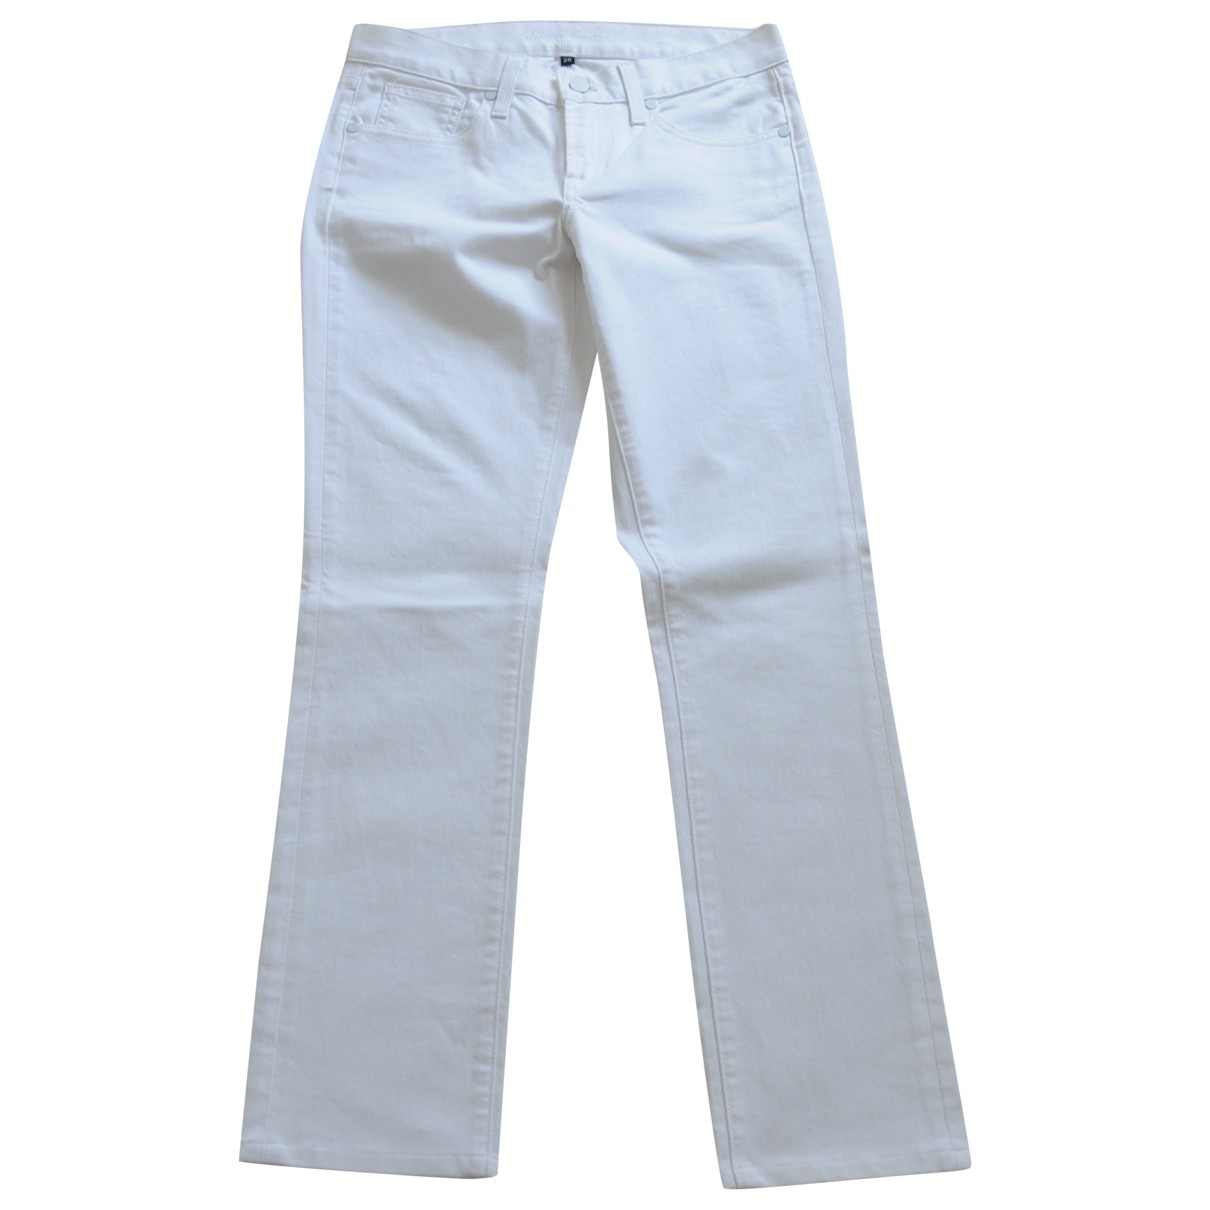 Ralph Lauren \N White Cotton - elasthane Jeans for Women 28 US